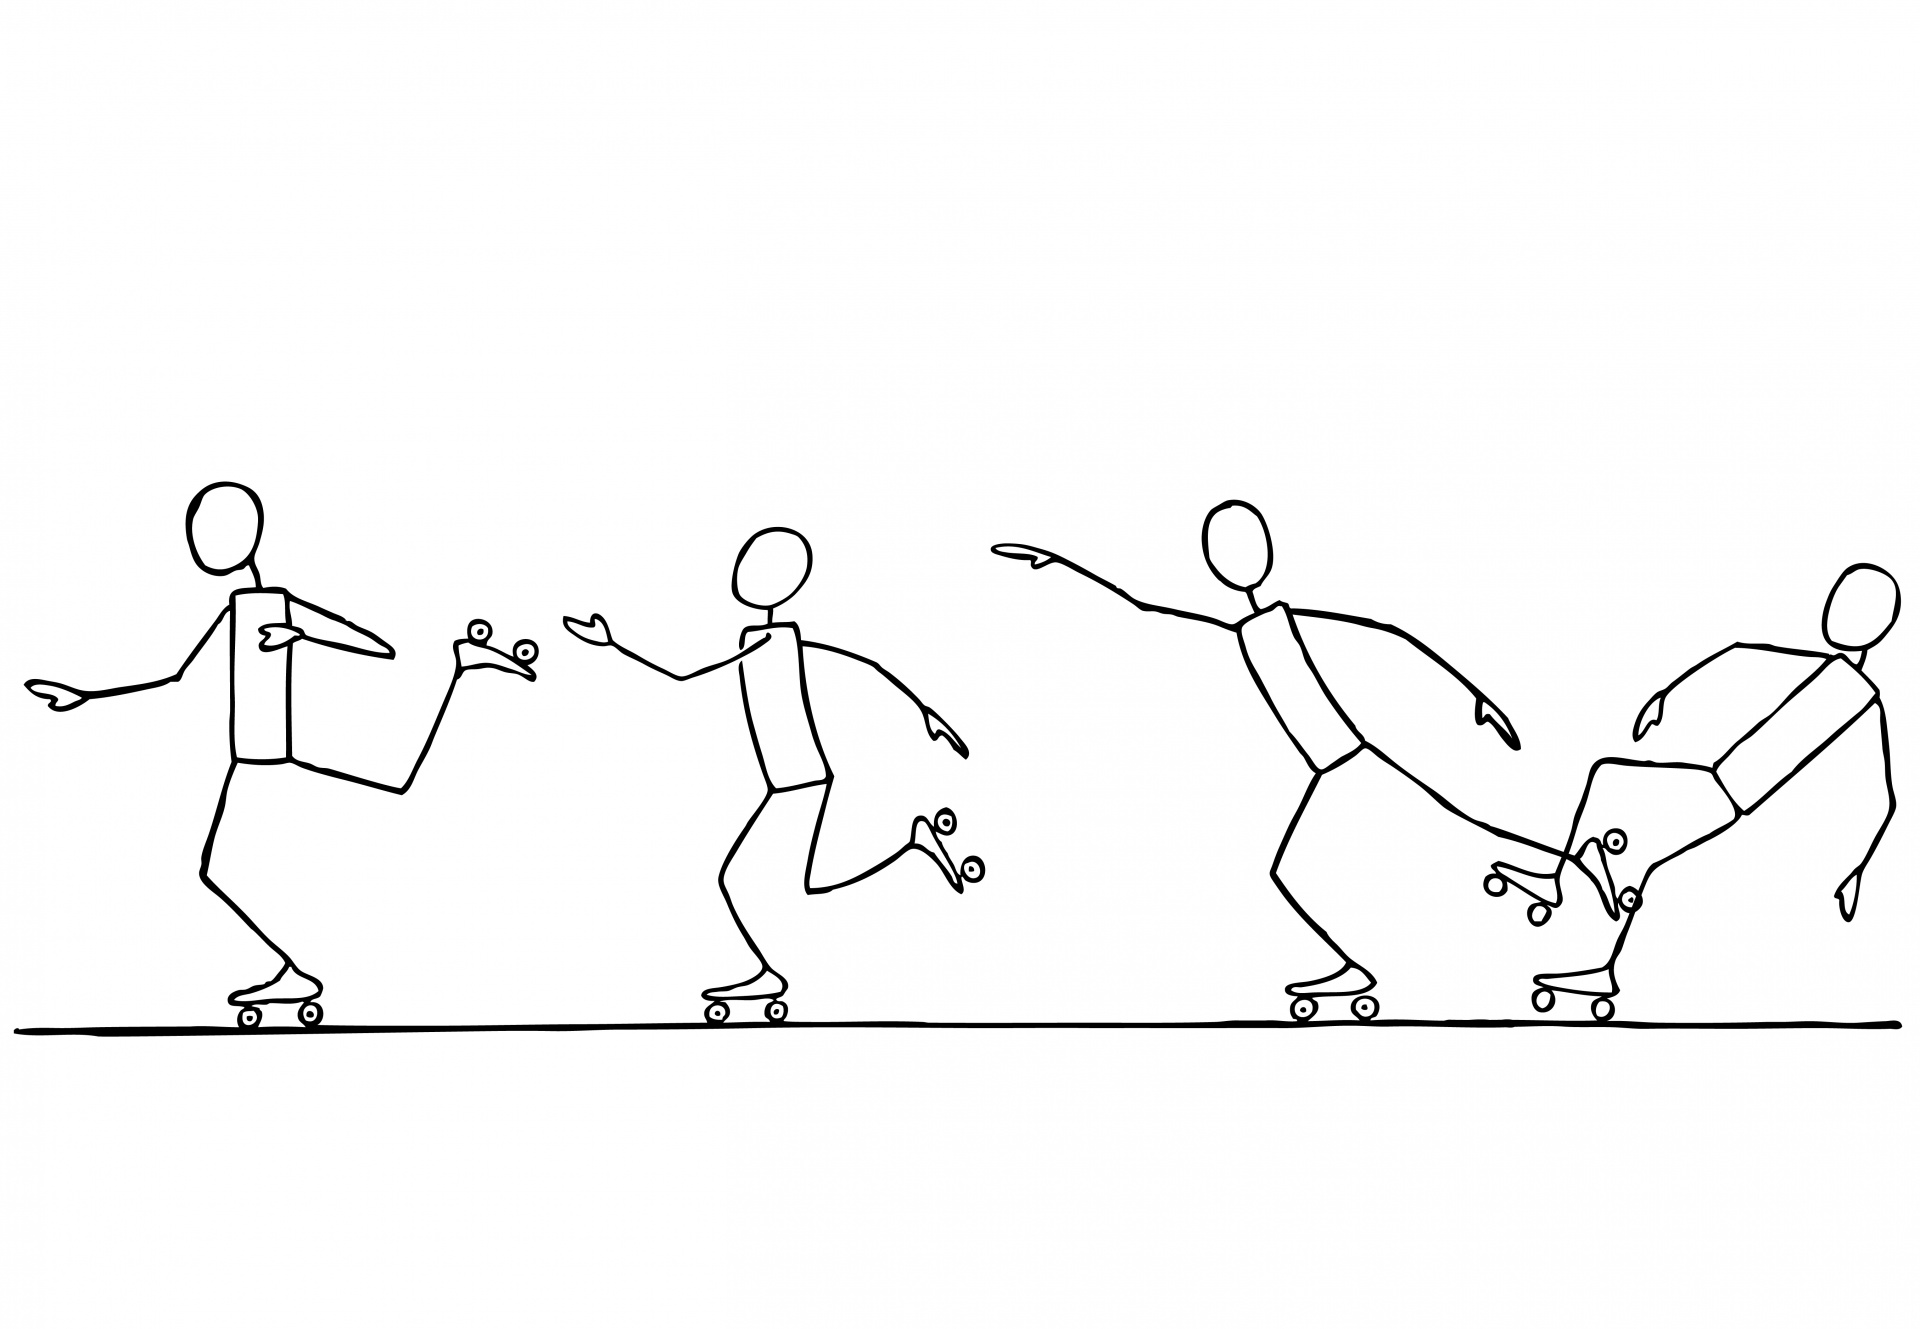 Roller Skating Stick Figures Free Stock Photo